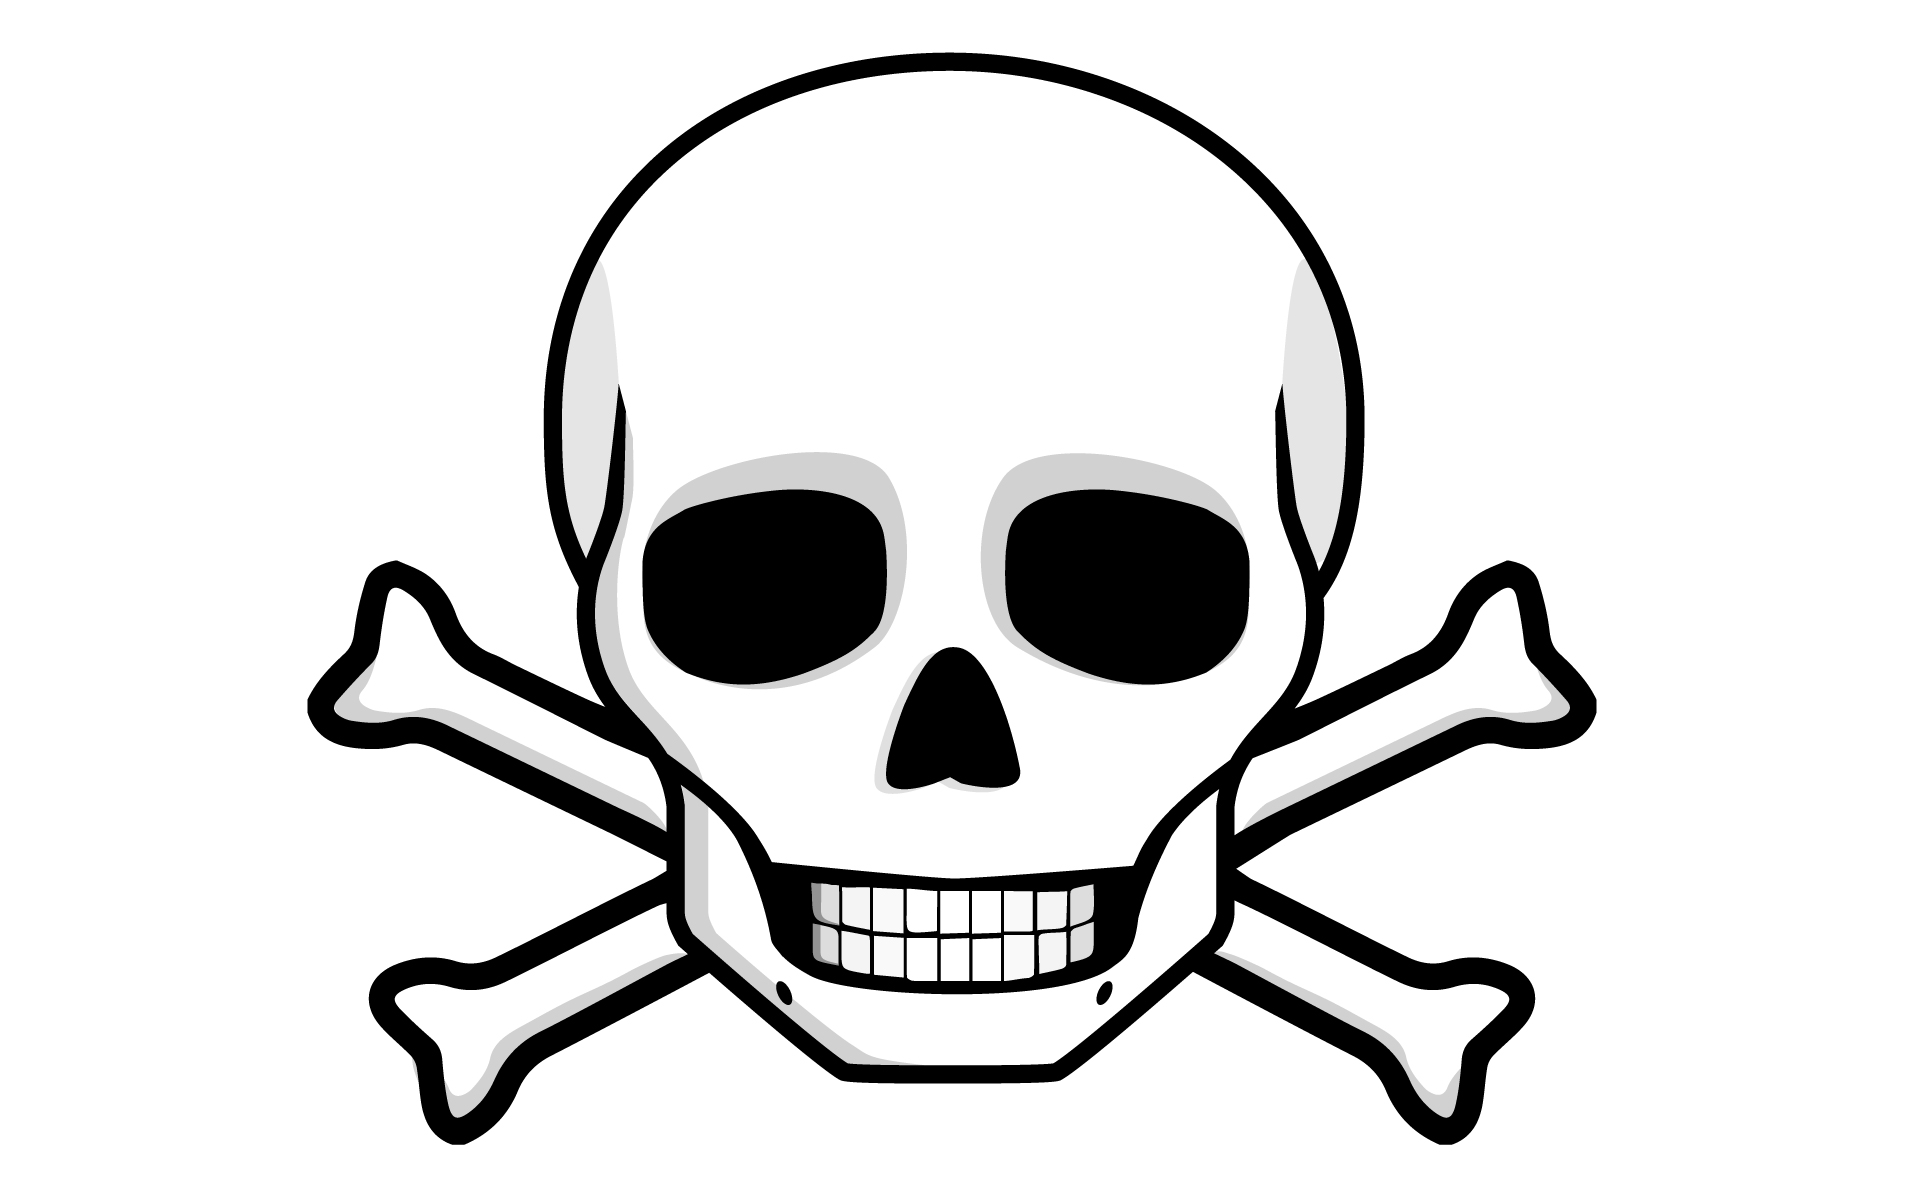 Skull and bones clipart banner freeuse library Free Skull And Bones, Download Free Clip Art, Free Clip Art ... banner freeuse library